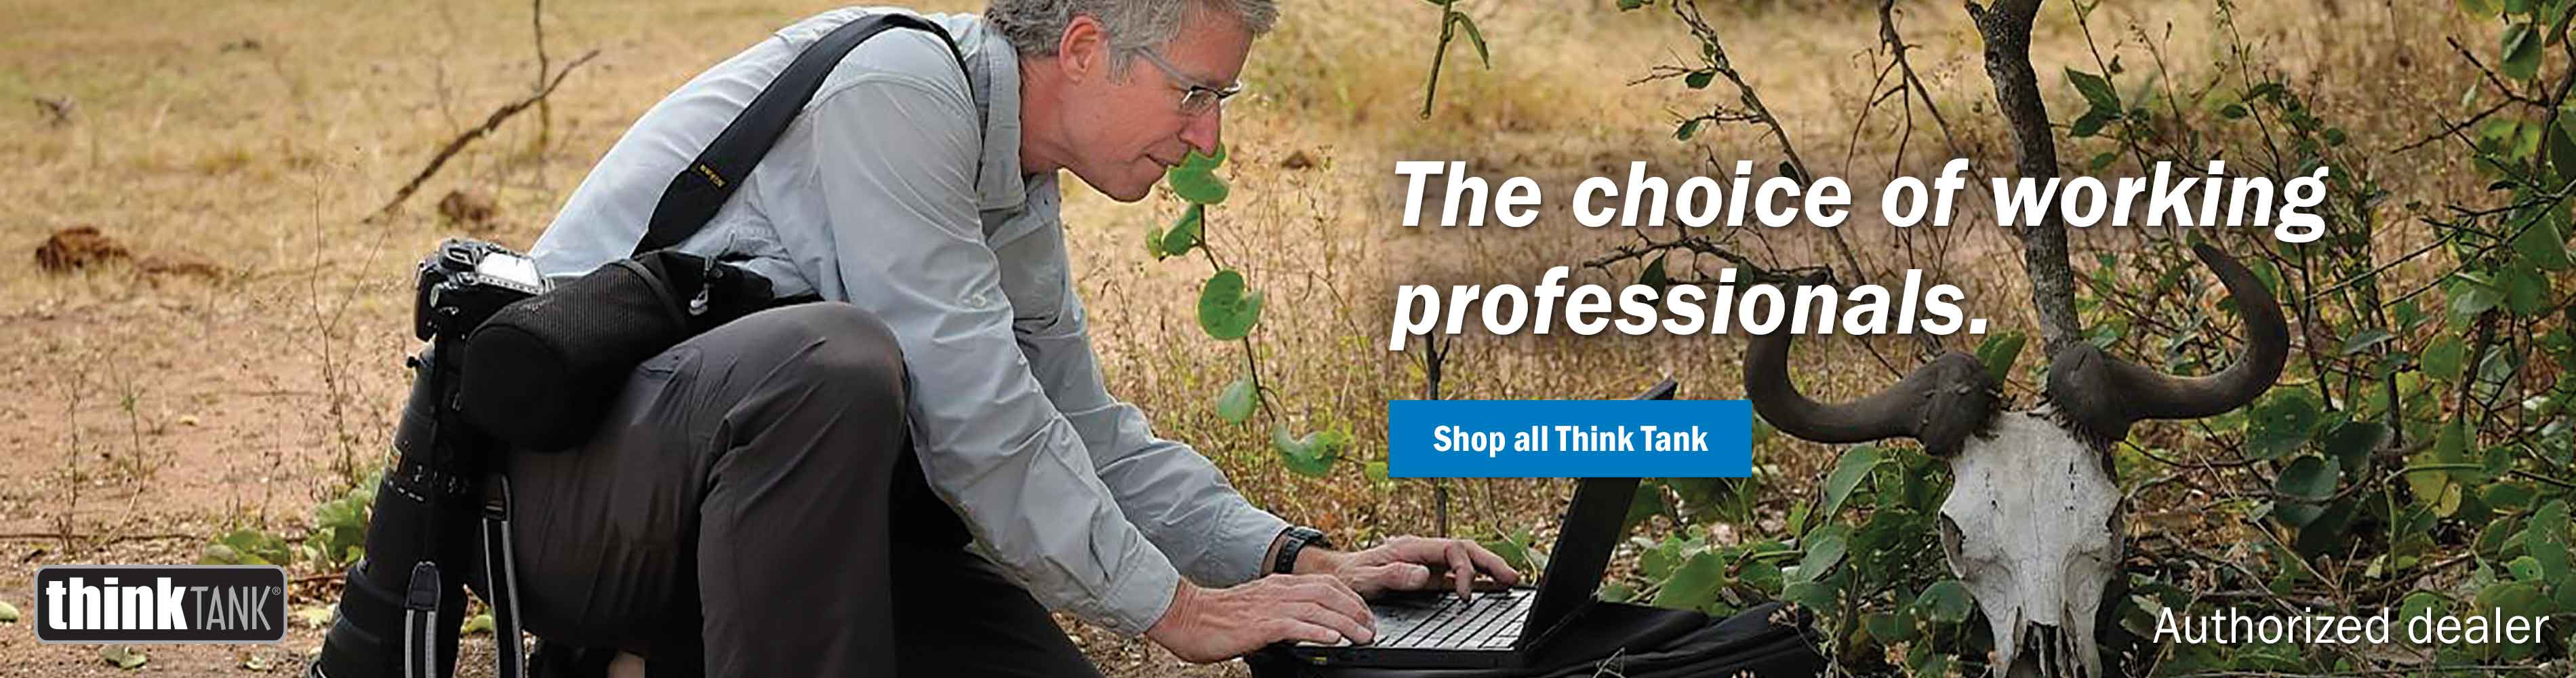 Think Tank: The choice of working professionals. Authorized dealer. Shop Think Tank >